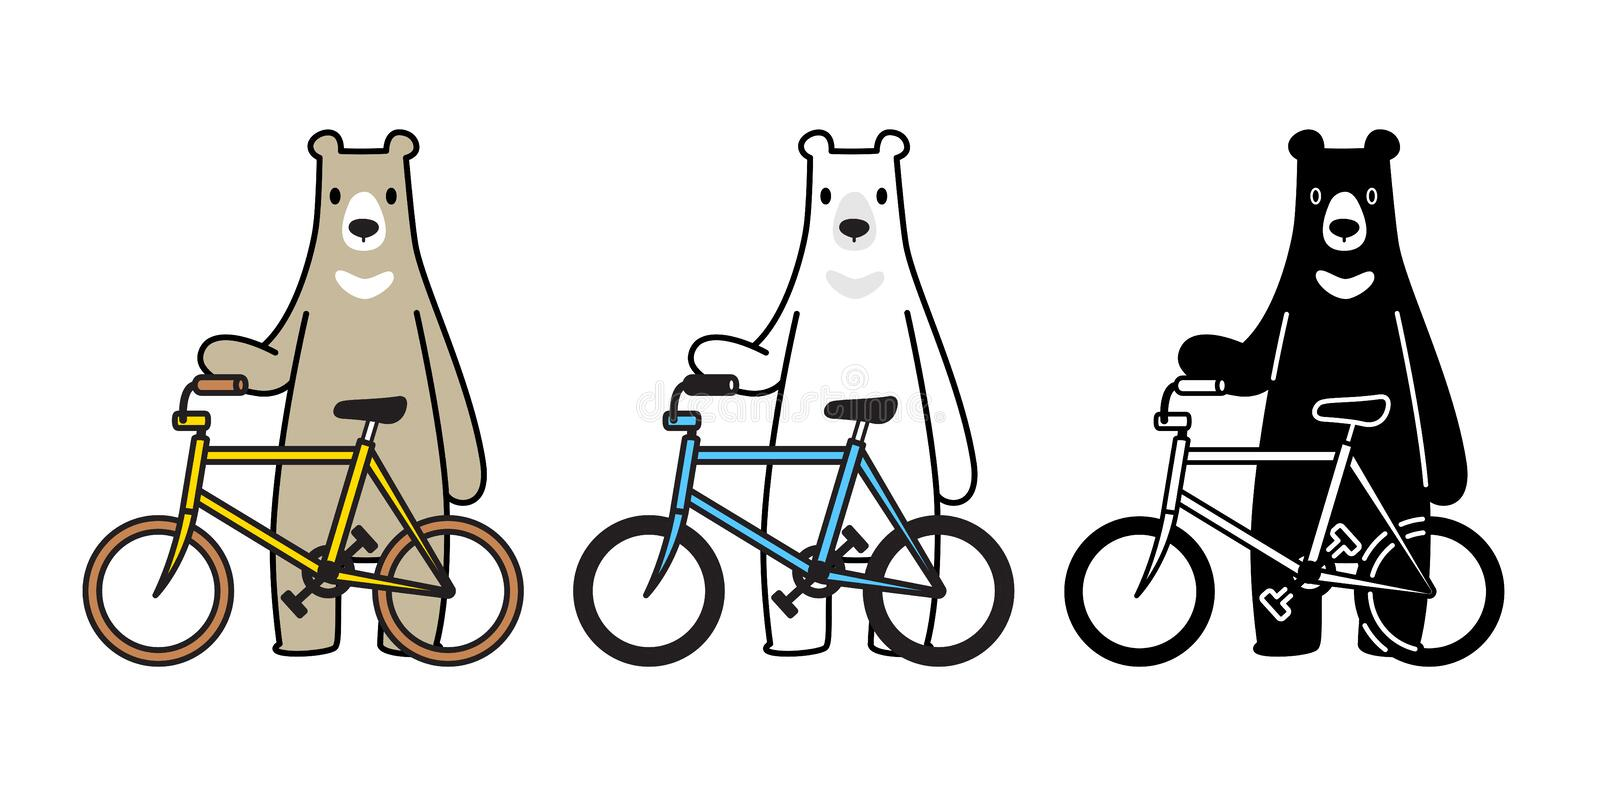 Bear vector polar bear bicycle riding cycling cartoon character icon logo isolated illustration royalty free illustration